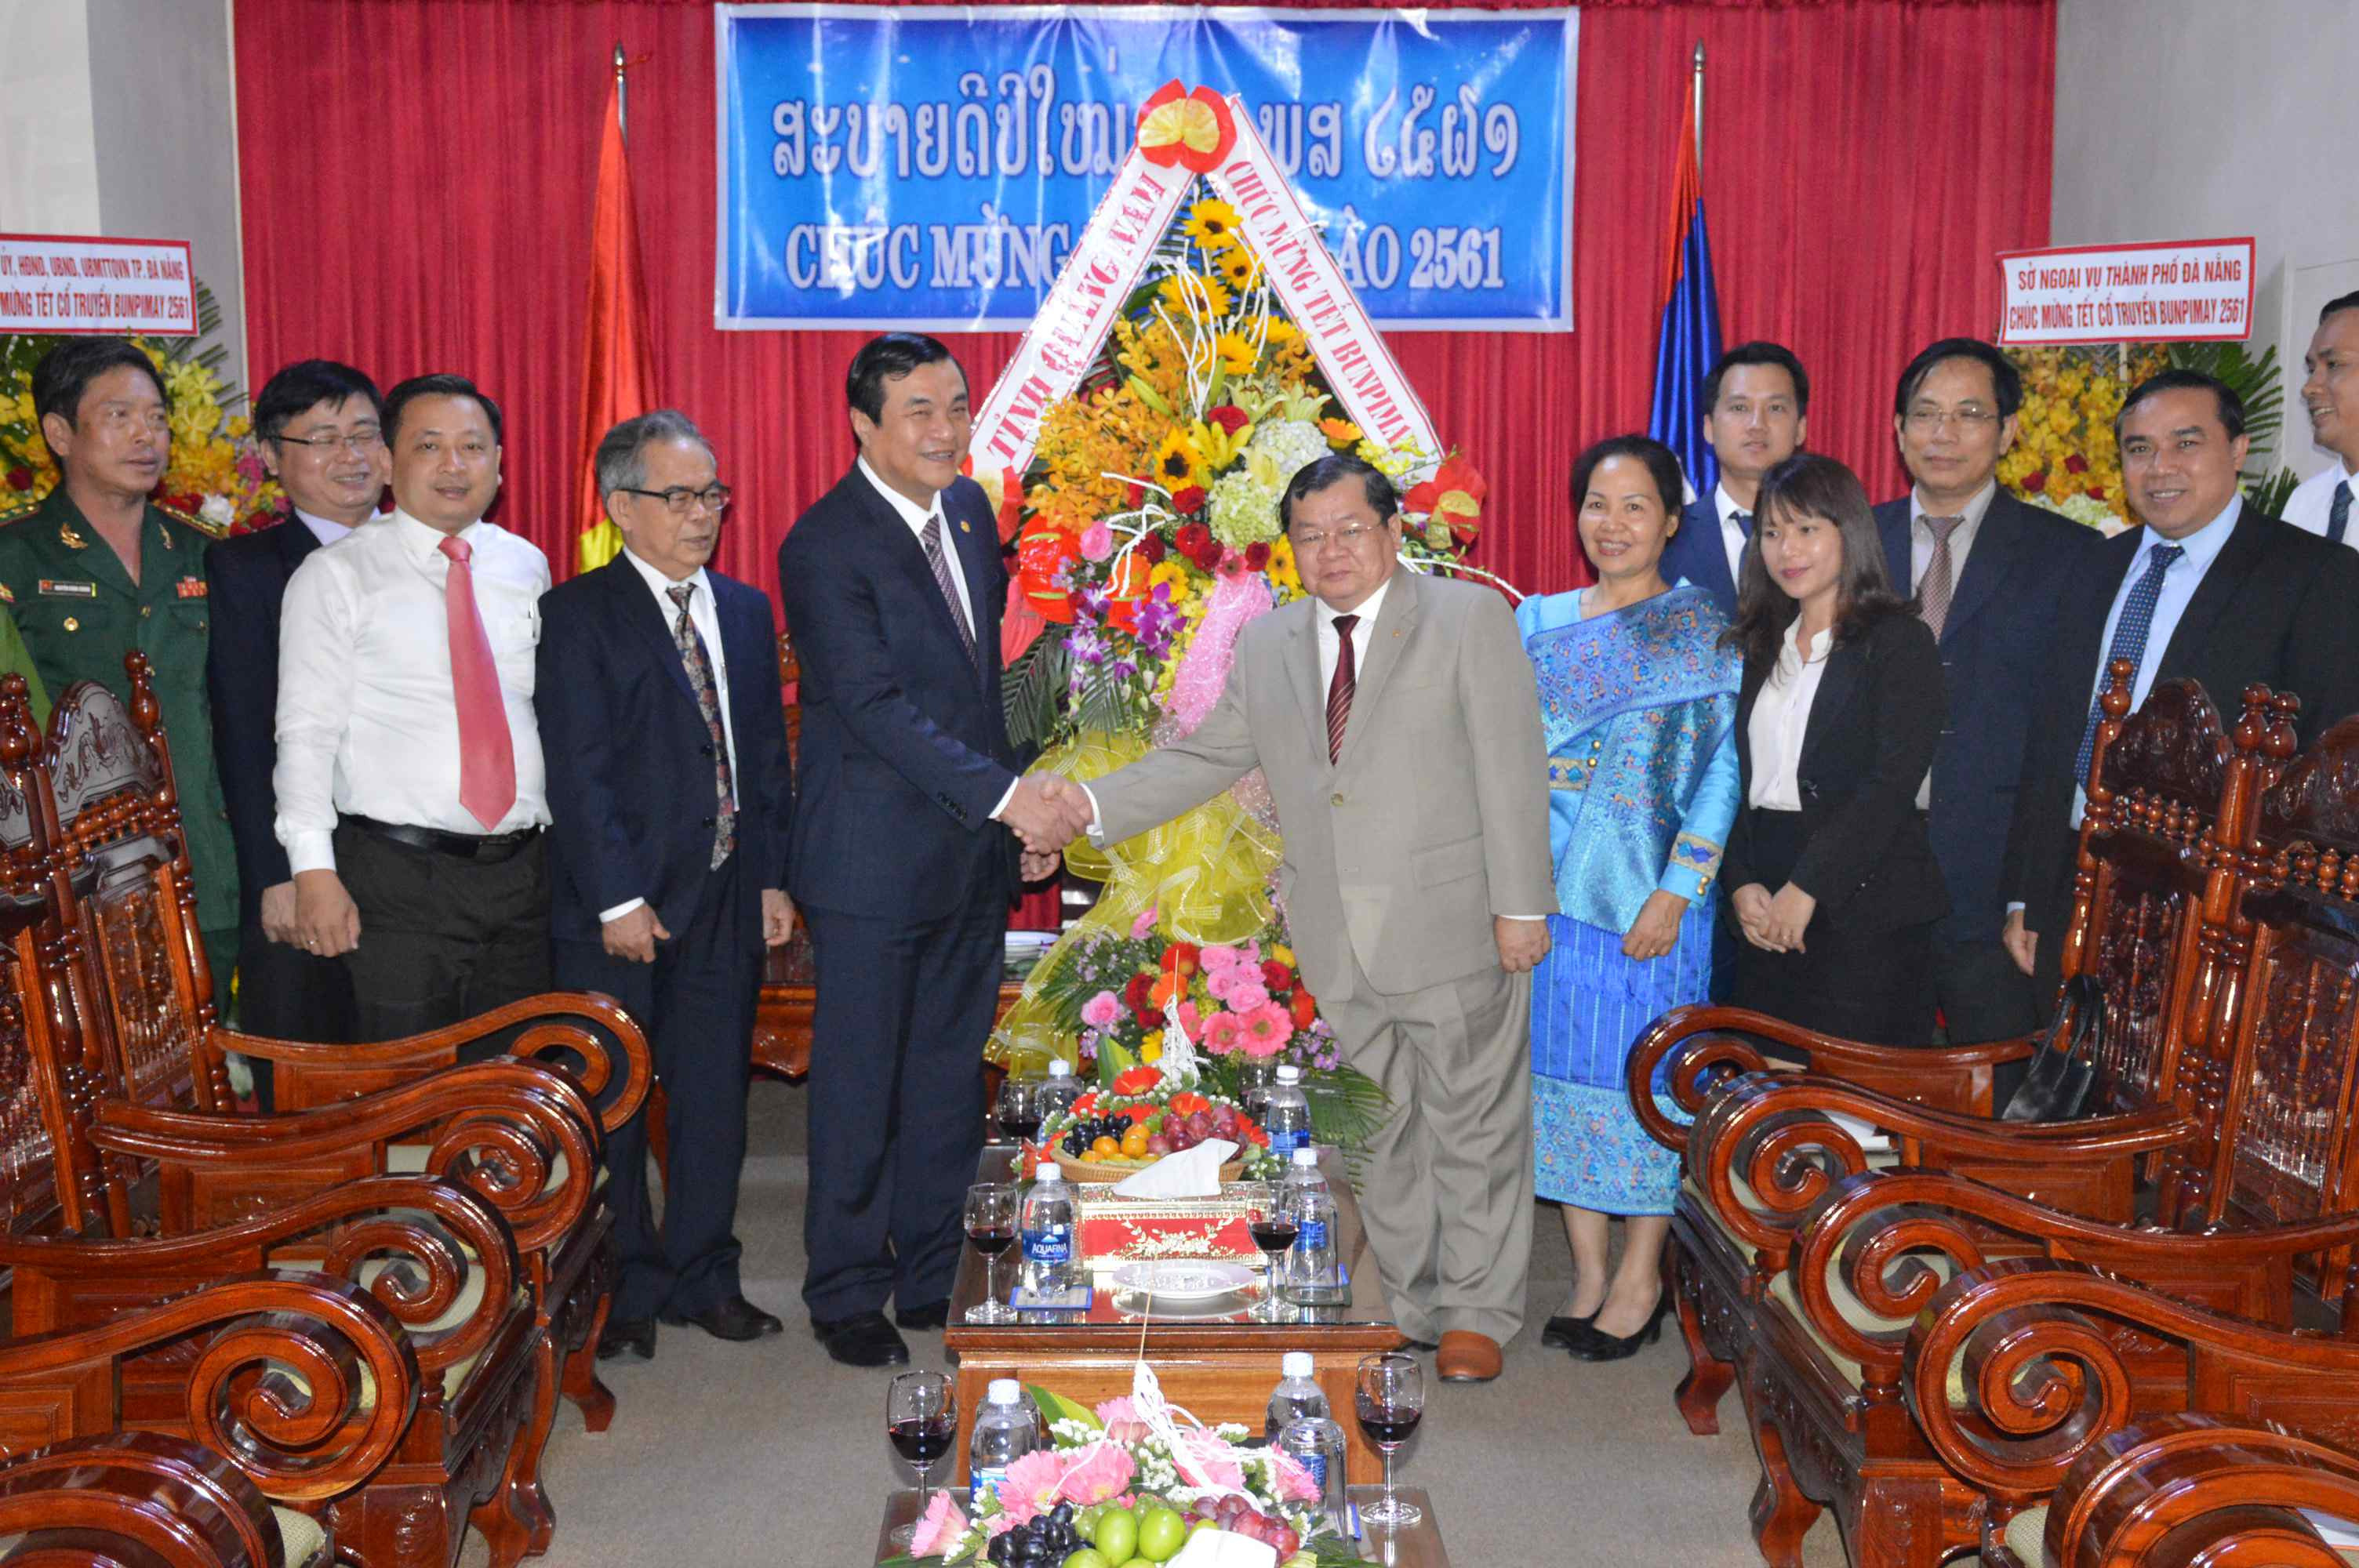 Mr Cuong sends his best wishes to the Consulate General of Laos in Da Nang city